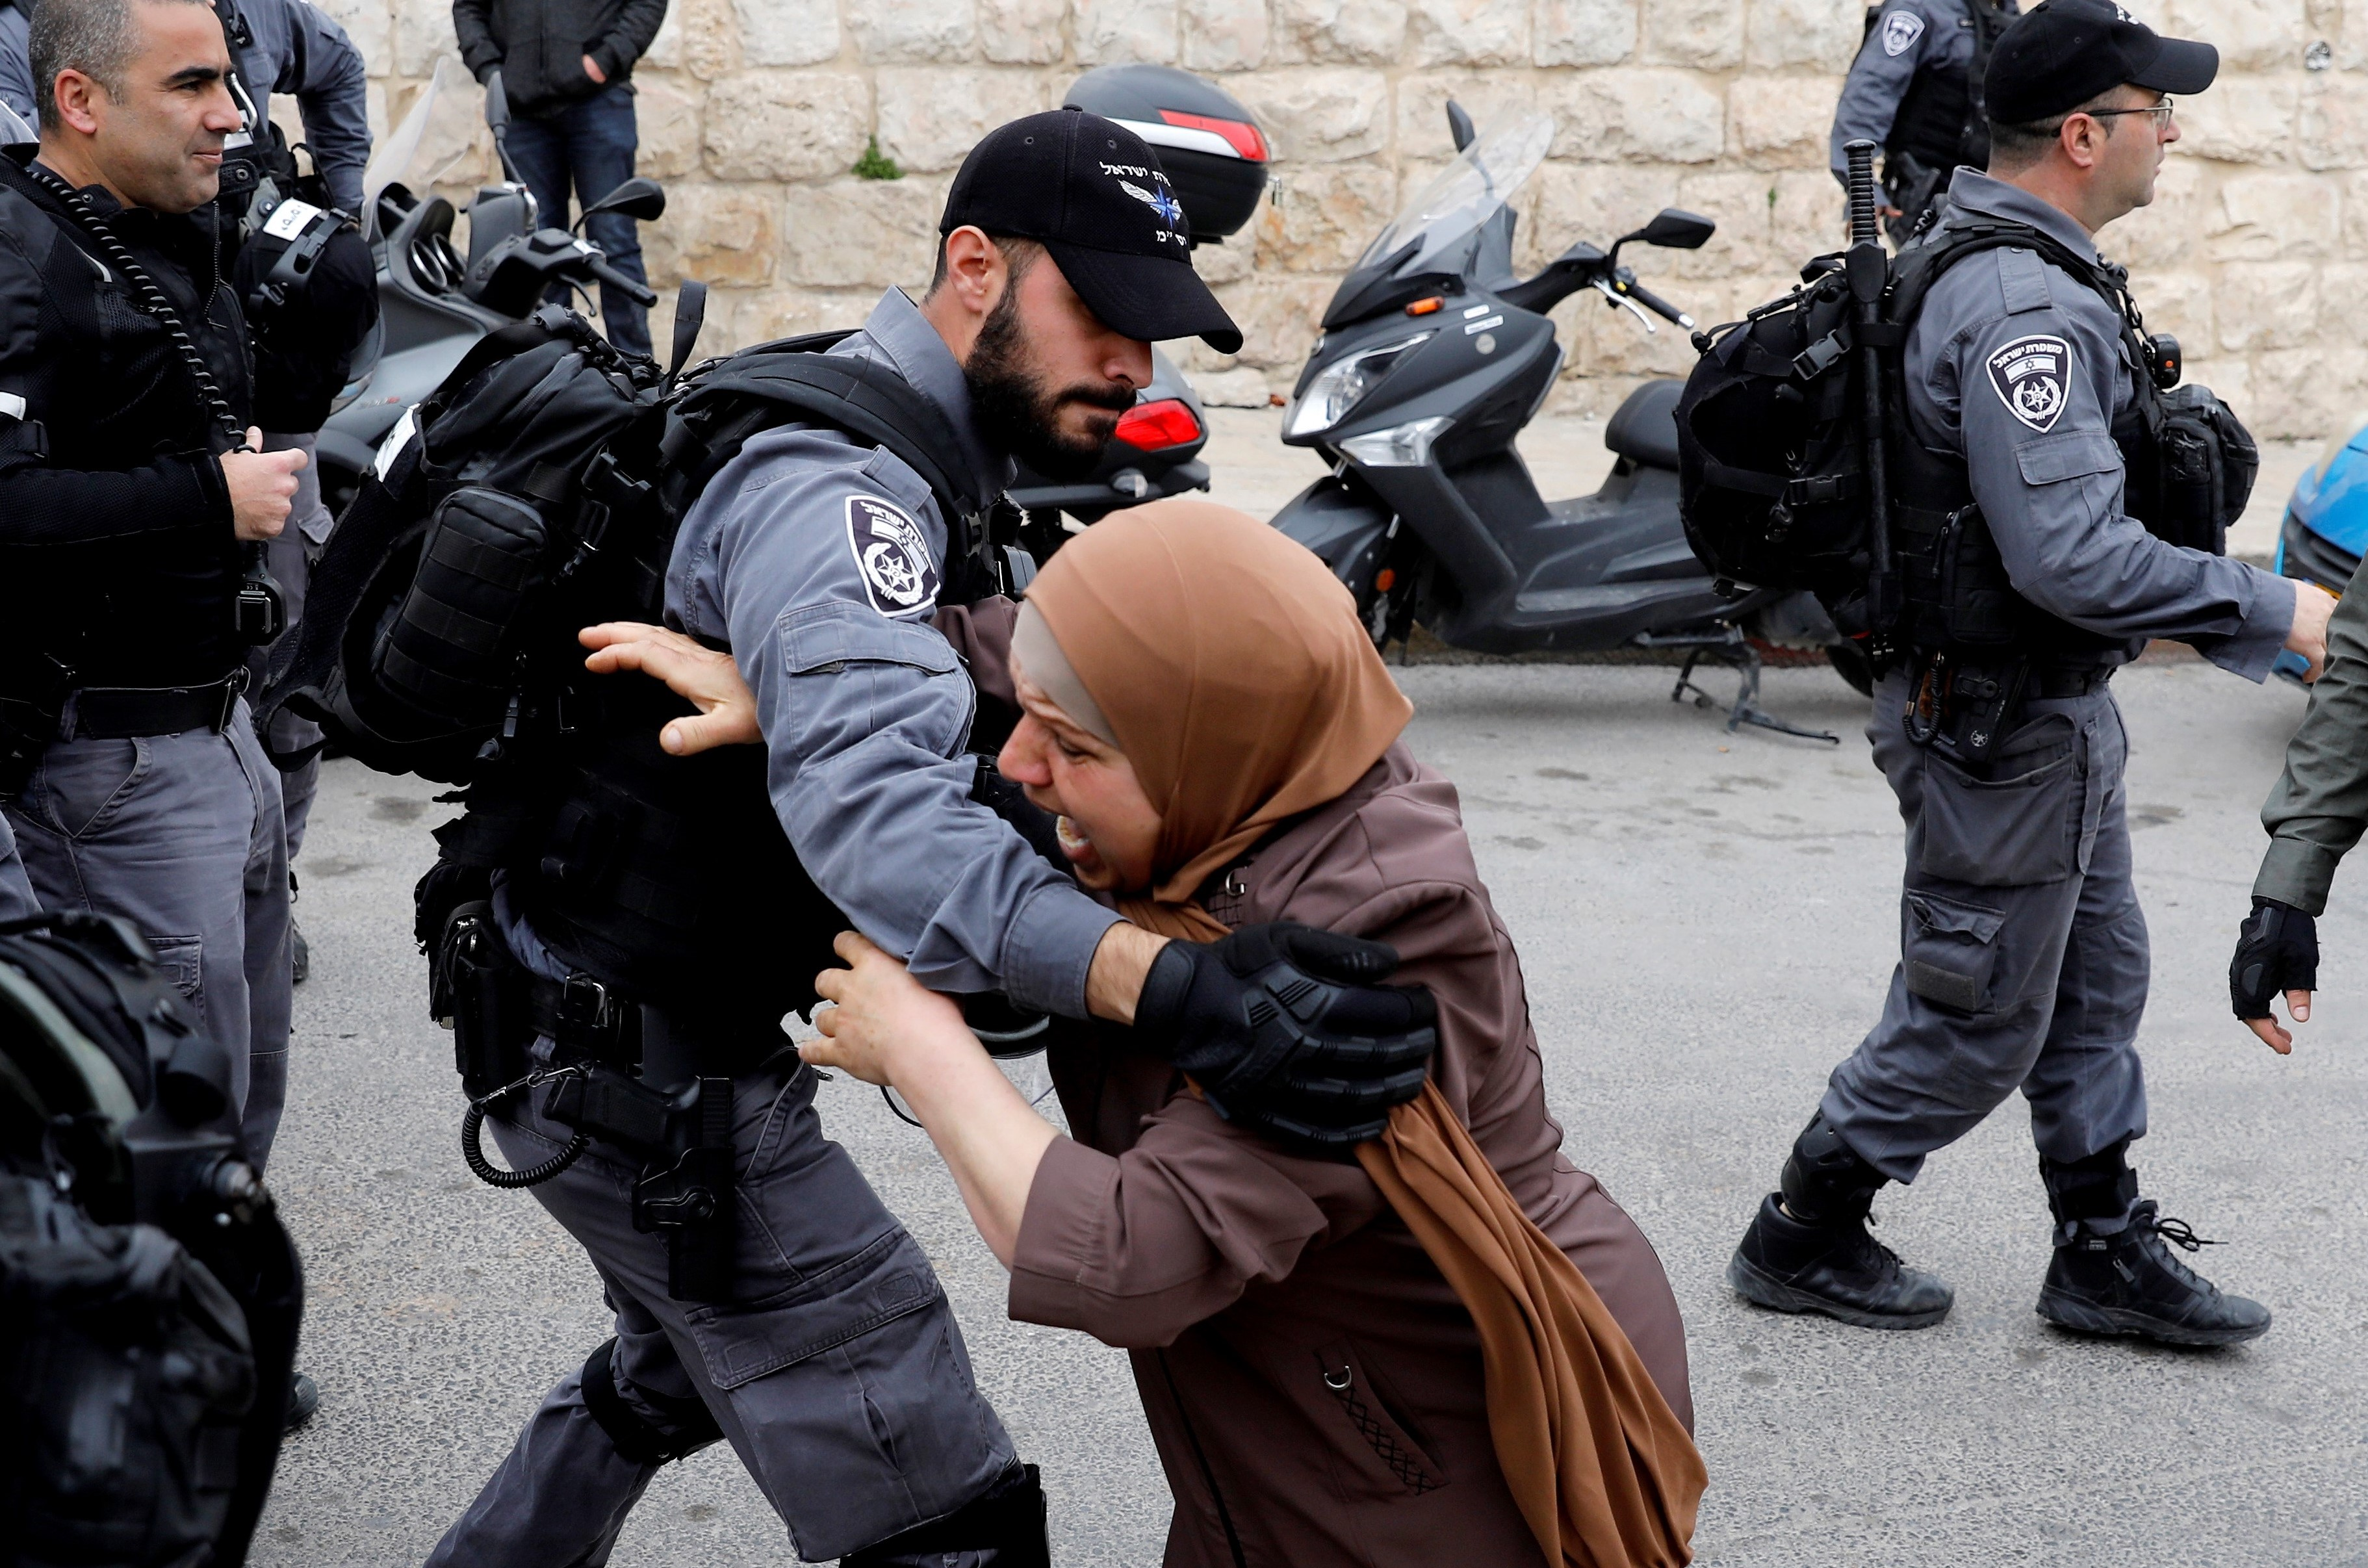 An Israeli policeman pushes back a Palestinian woman outside the Old City of Jerusalem after Israeli forces closed the entrance to al-Aqsa mosque compound on 12 March (AFP)